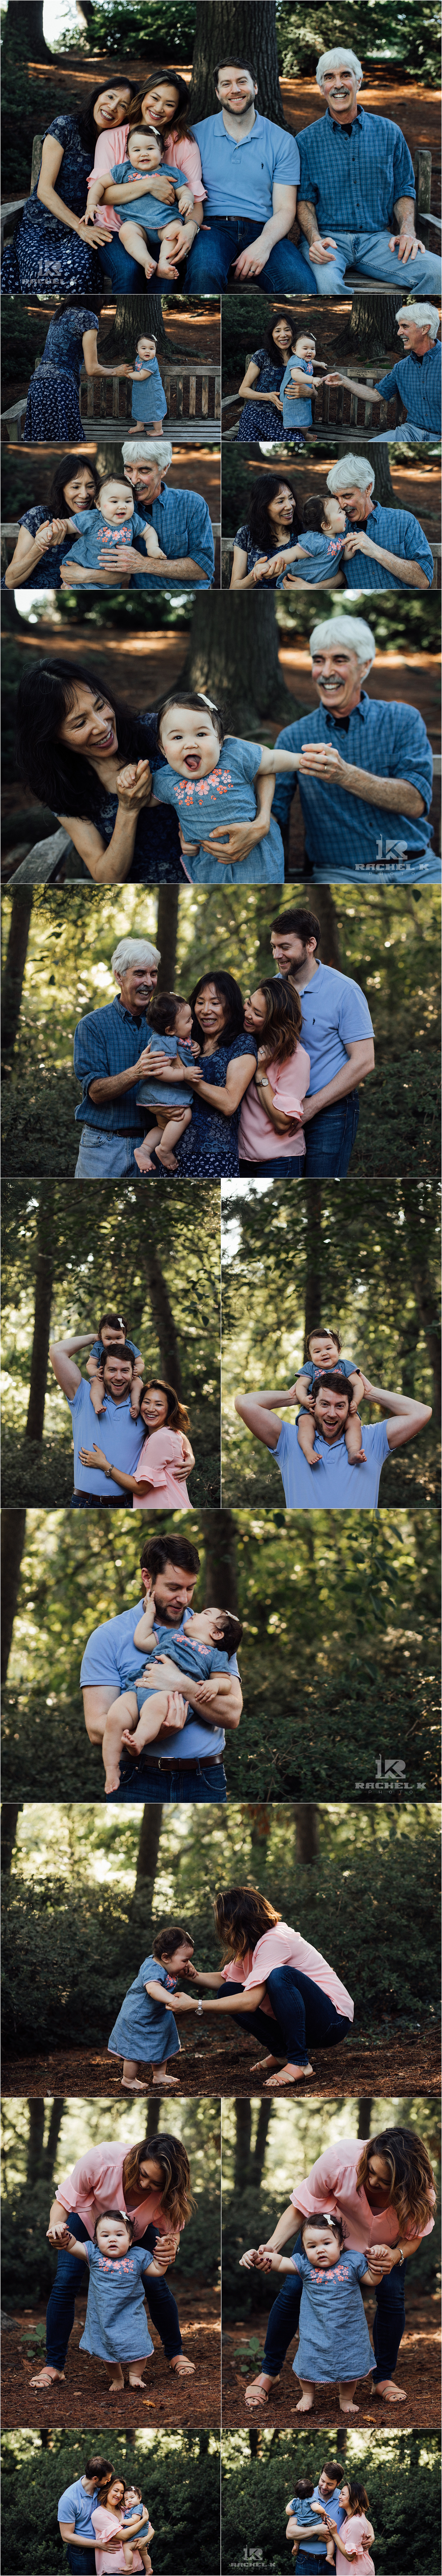 Alexandria Virginia one year old family session at Green Springs Gardens by Rachel K Photo